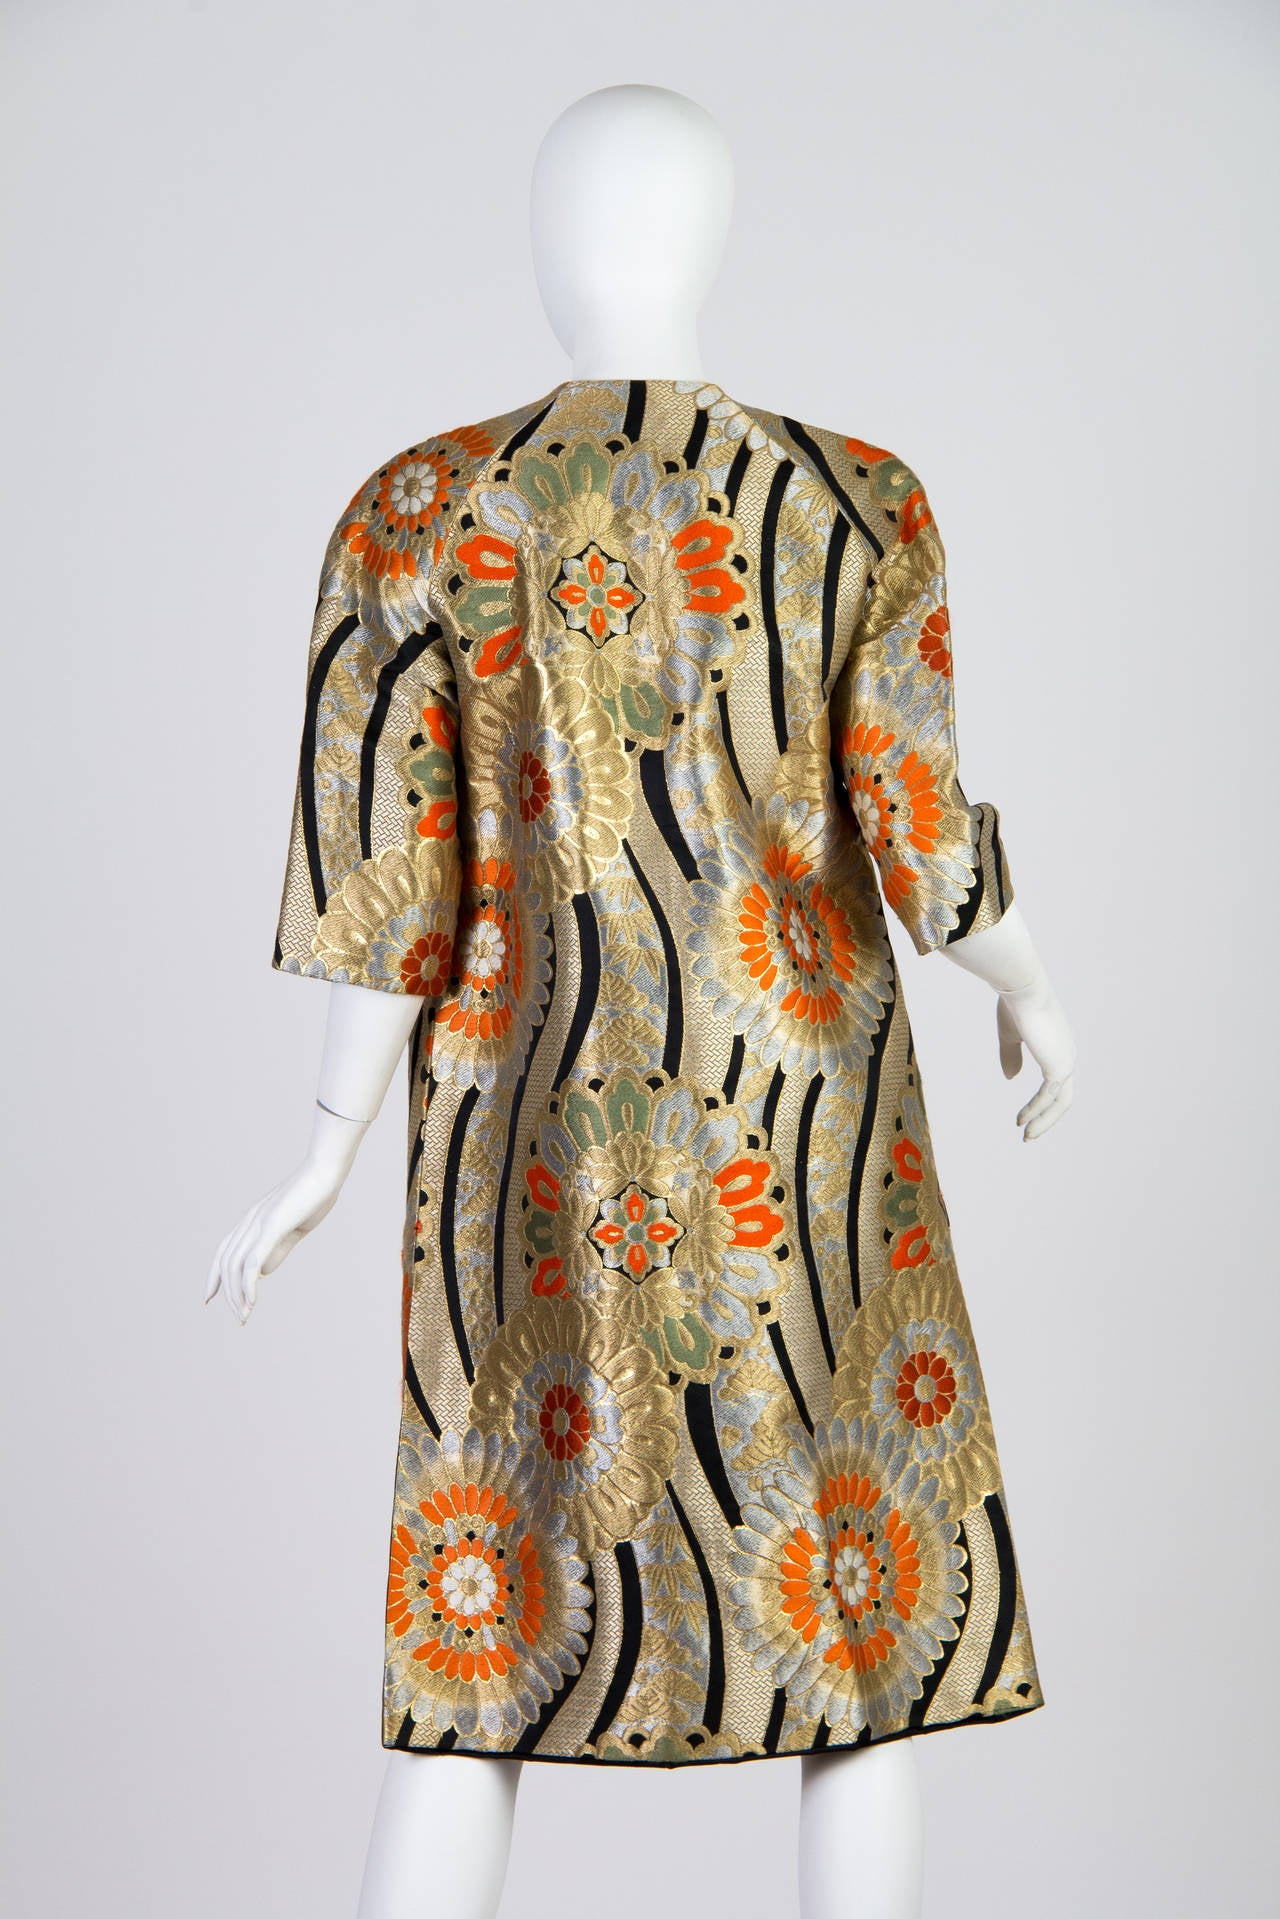 1960s Coat Made from Gold Shōwa Era Japanese Obi Fabric In Excellent Condition For Sale In New York, NY